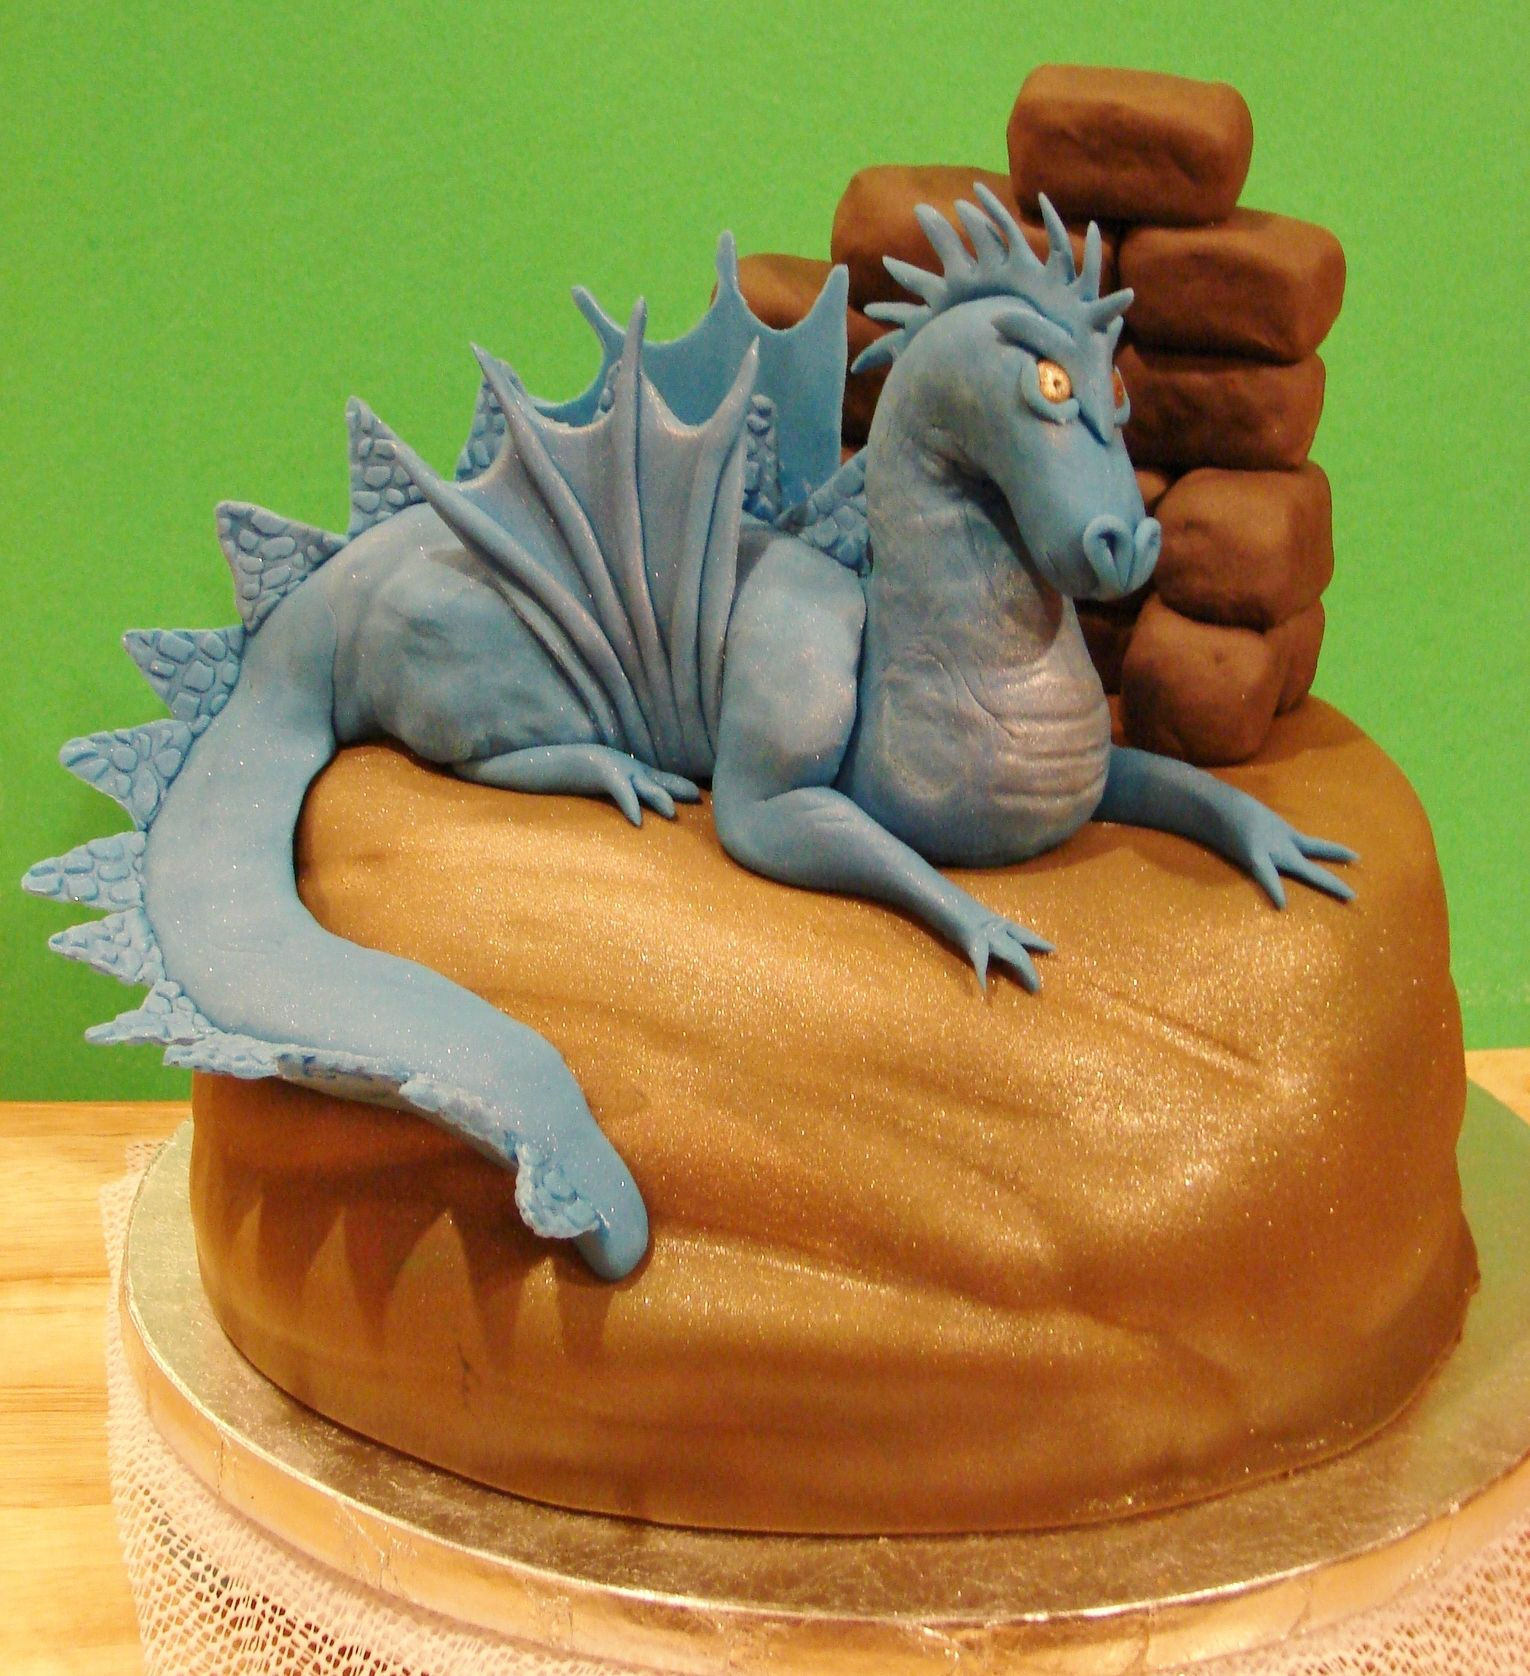 Dragon Birthday Cake Fierce Dragon Cake Fierce Looking Dragon Cake For A Friends Sons